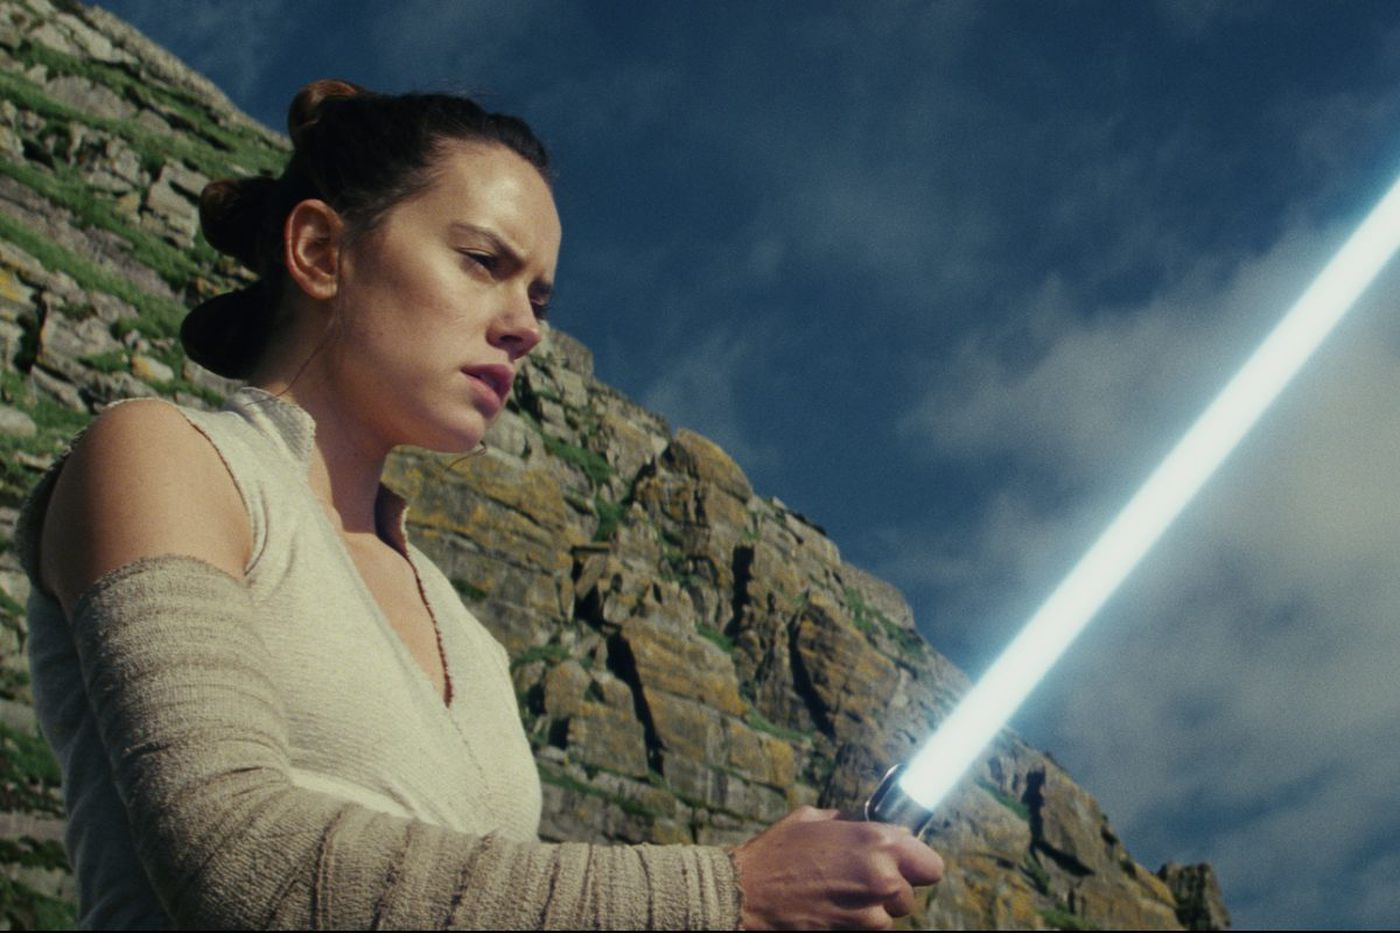 'The Last Jedi' review: Carrie Fisher, Daisy Ridley run things in the new 'Star Wars'